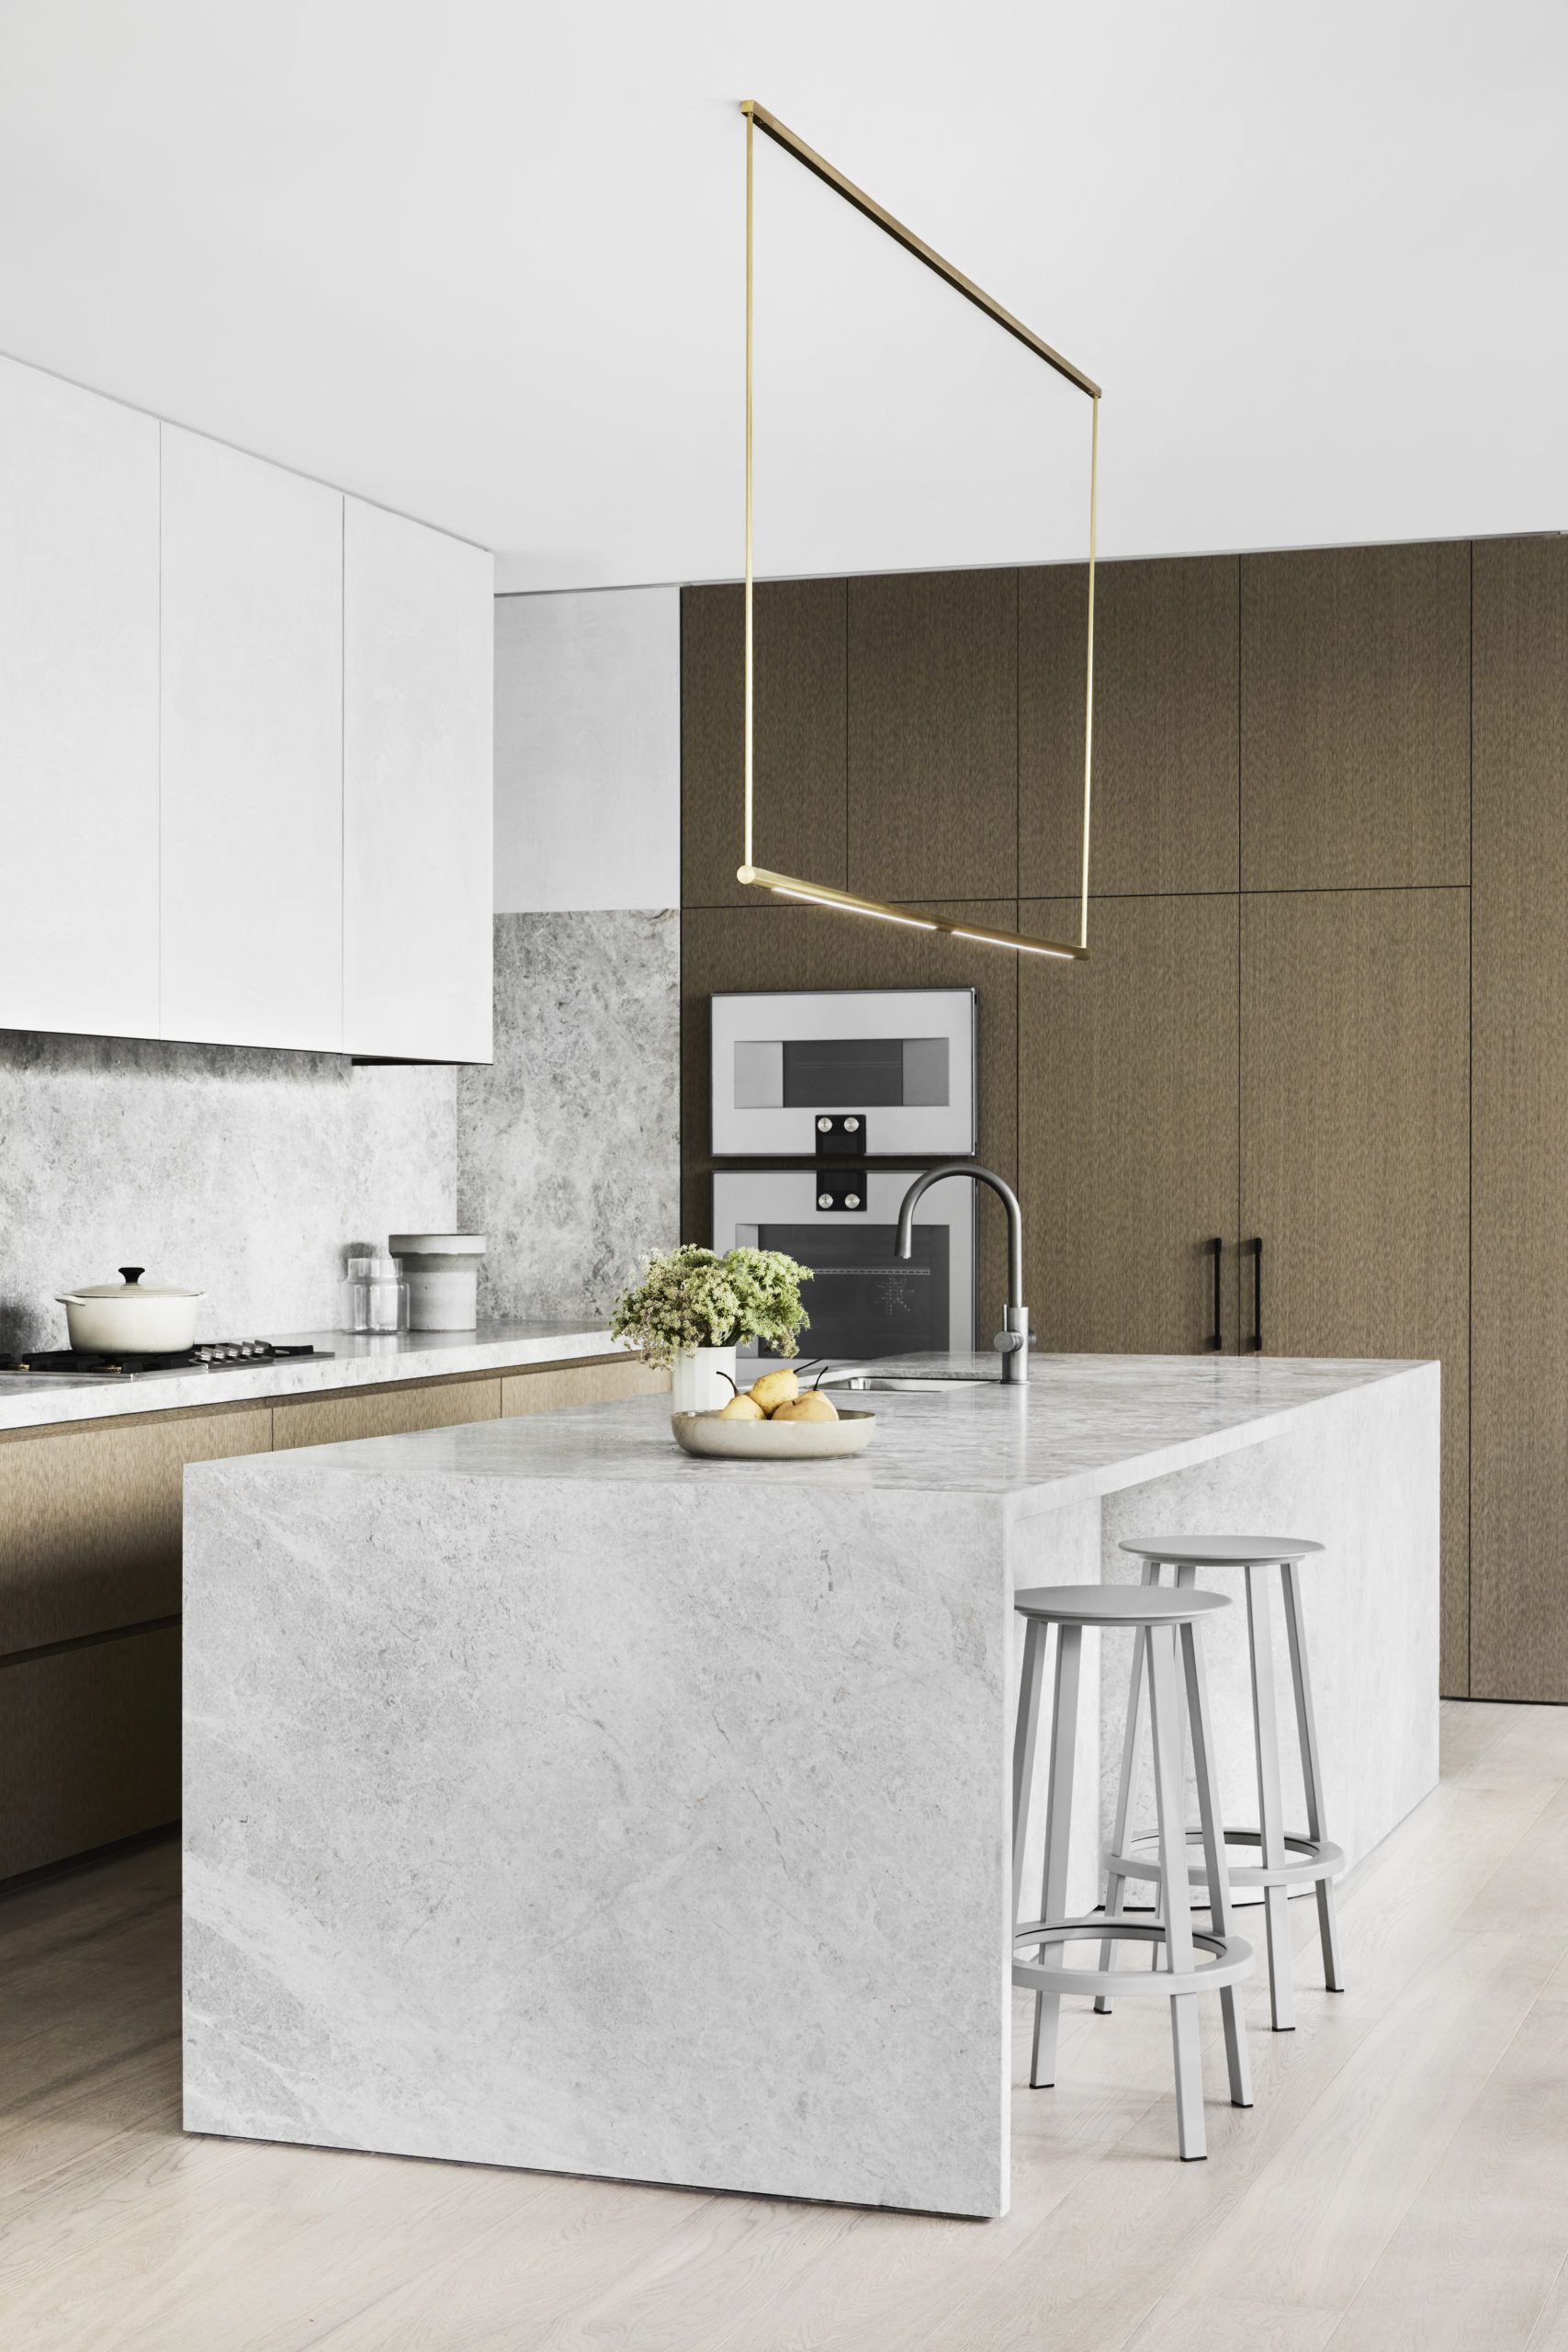 Refined Apartment Living with Mim Design